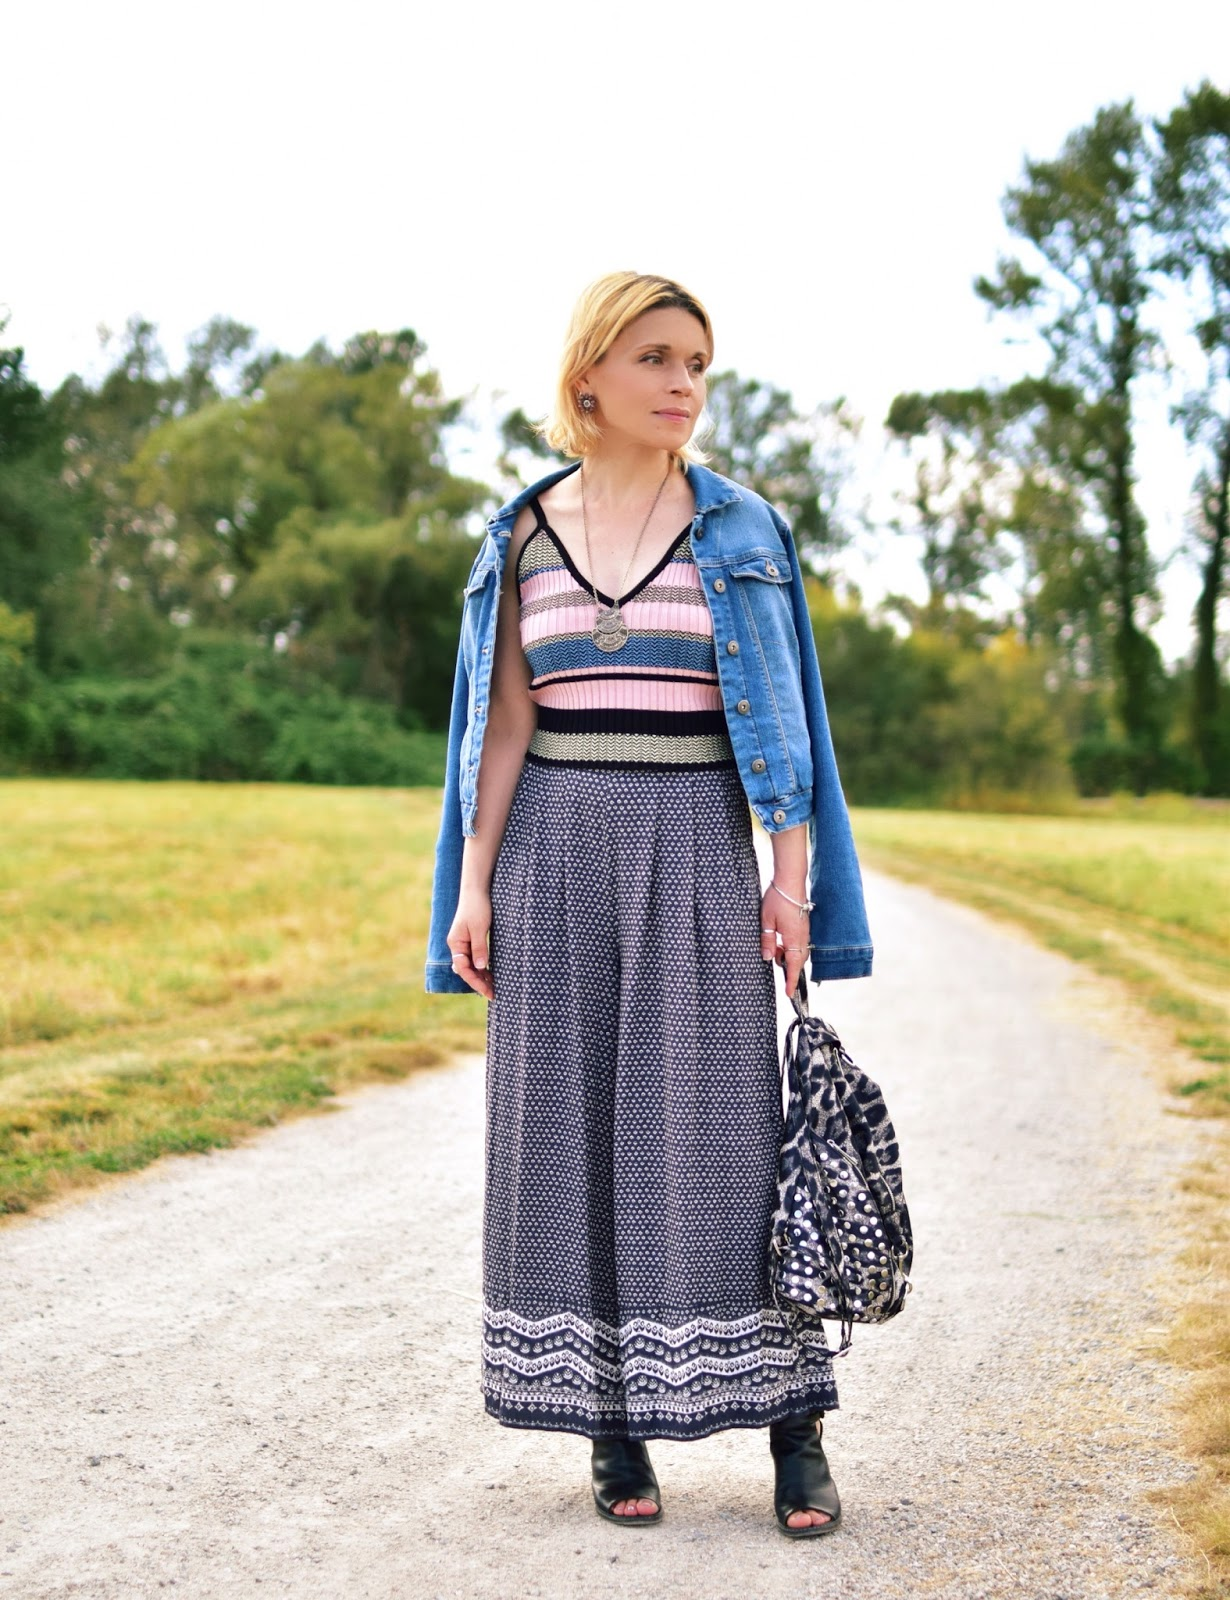 Monika Faulkner styles patterned palazzo pants with a striped tank top, denim jacket, and cut-out booties